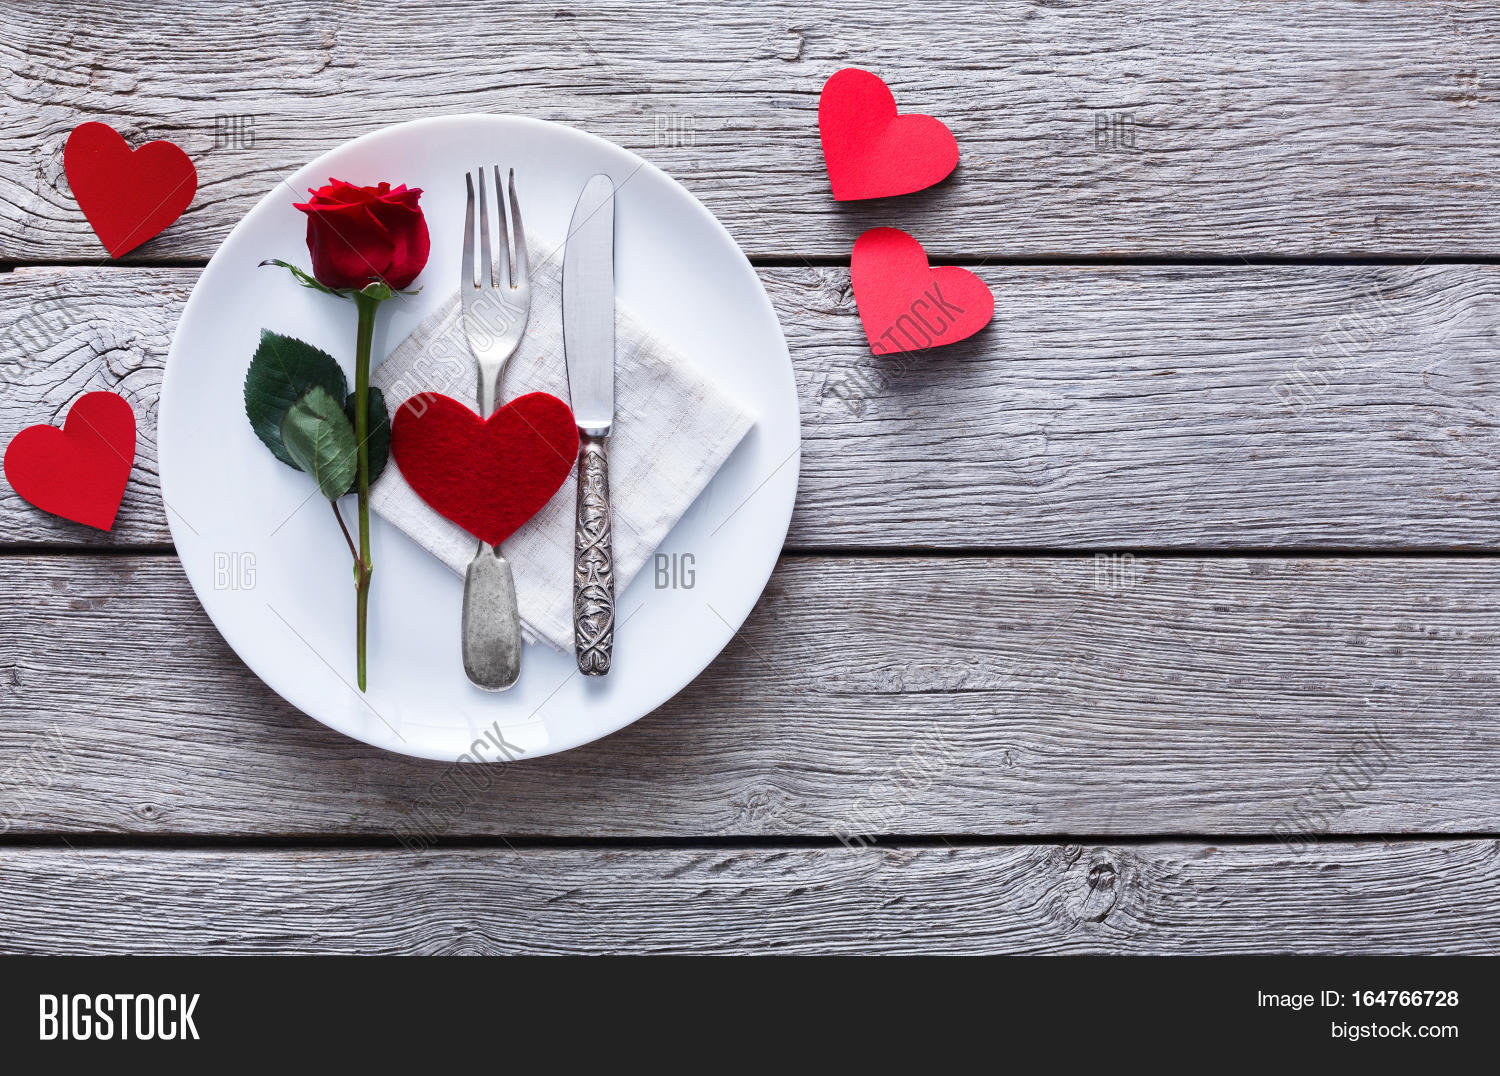 Romantic dinner concept valentine image photo bigstock for Table 52 valentine s day